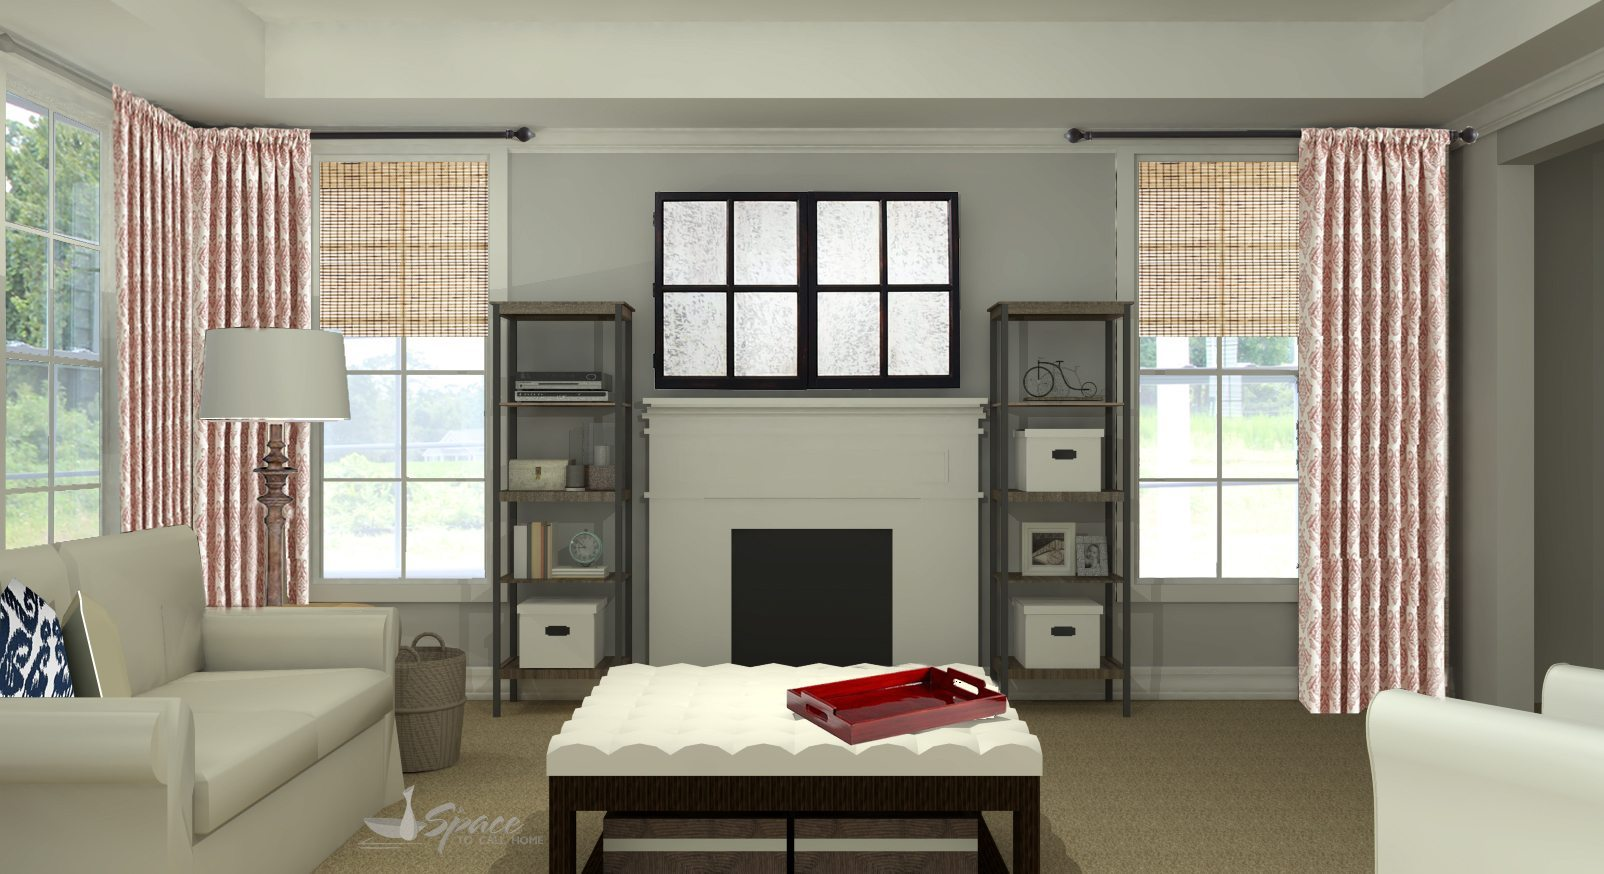 Virtual room design create your dream room a space to for Make your dream bedroom